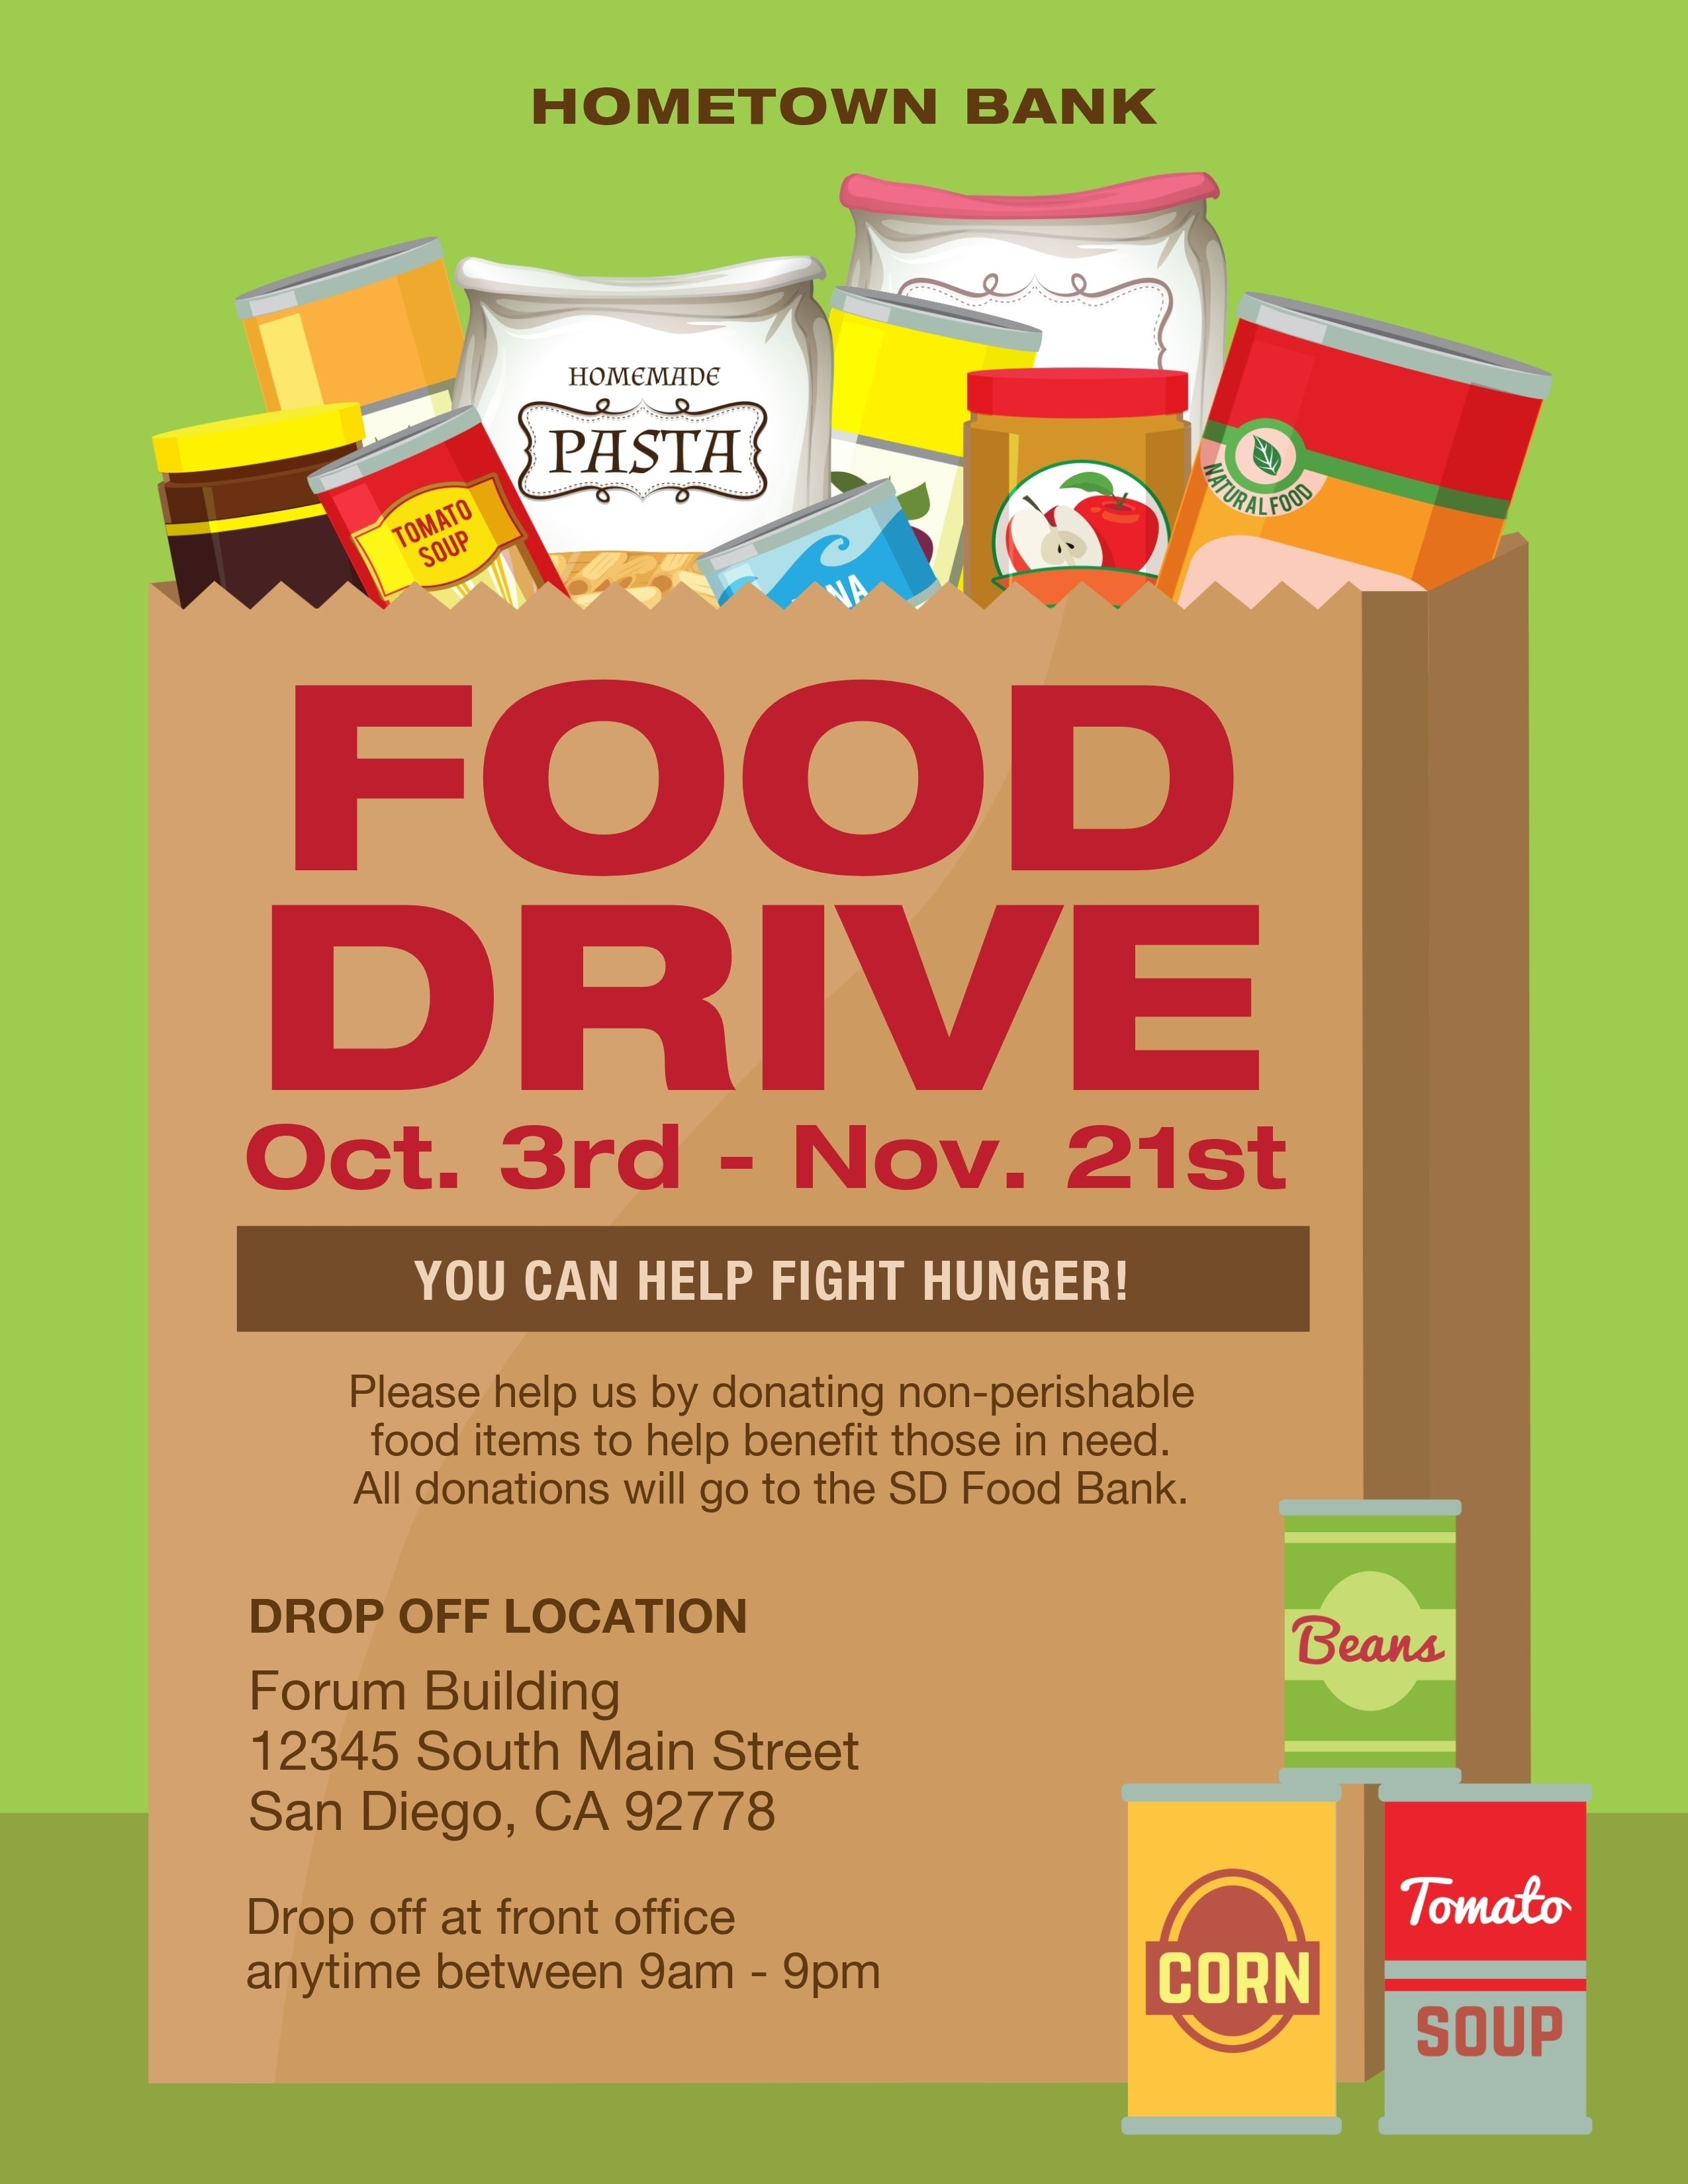 Food Drive Flyer Template | Canned Food Drive Flyer ...